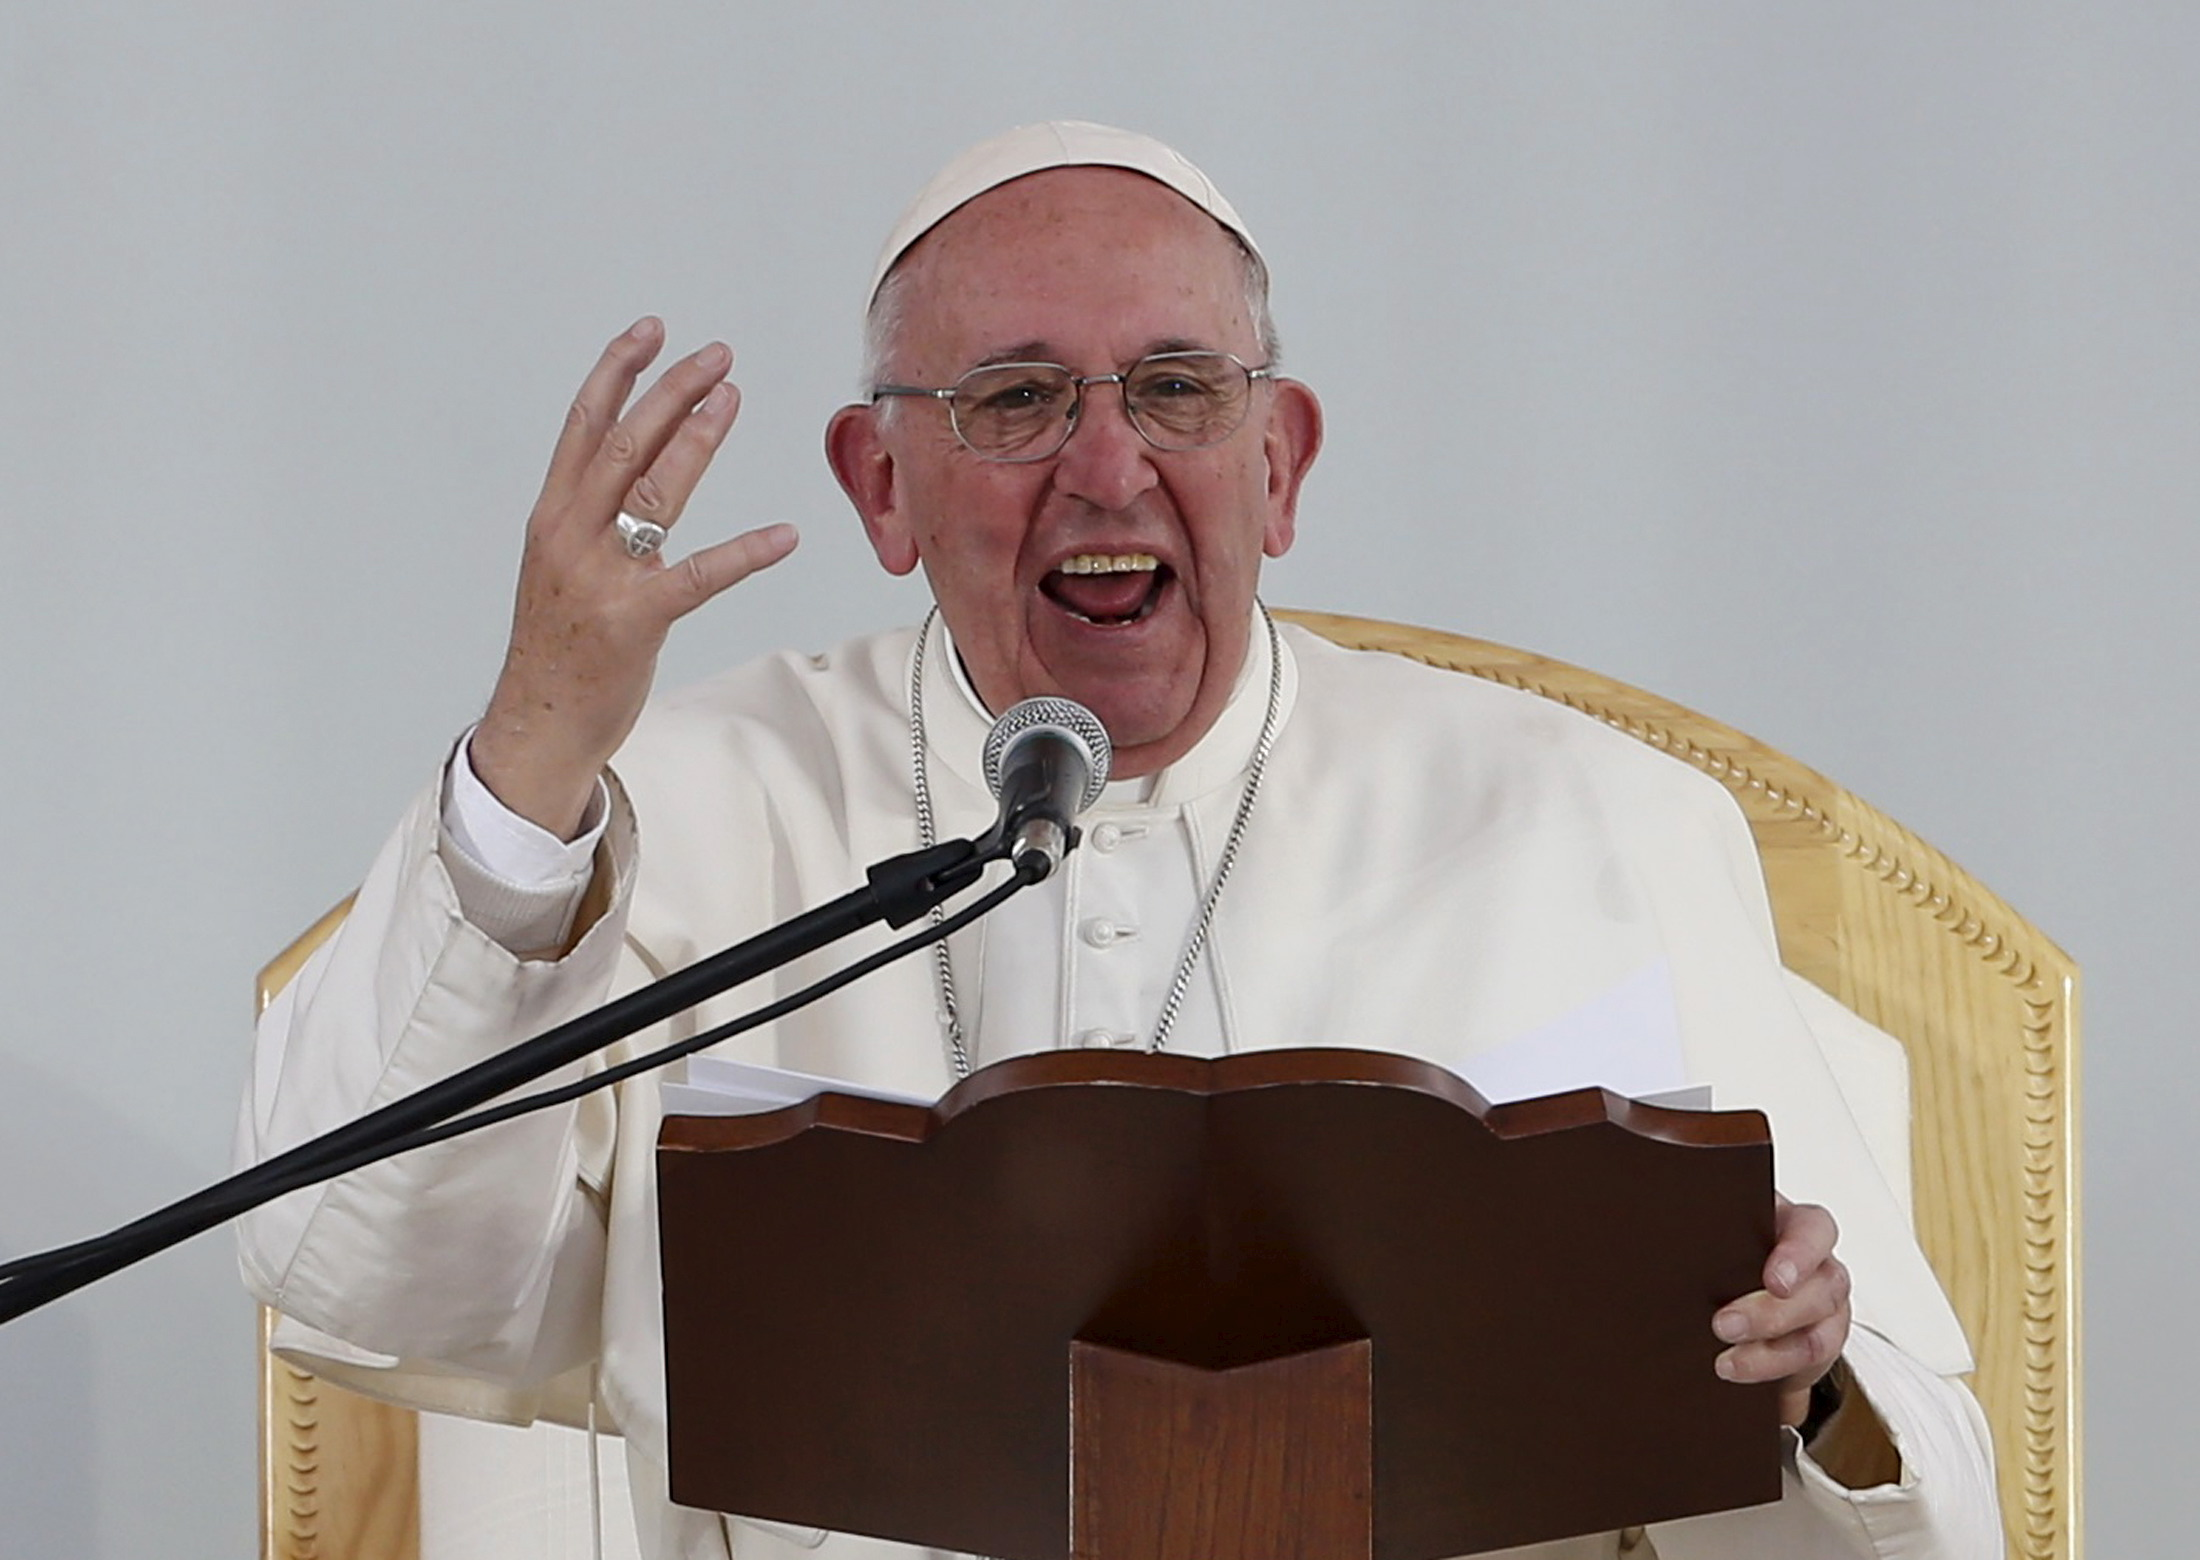 Pope Francis addresses the audience during a meeting with youths at the Jose Maria Morelos y Pavon stadium in Morelia